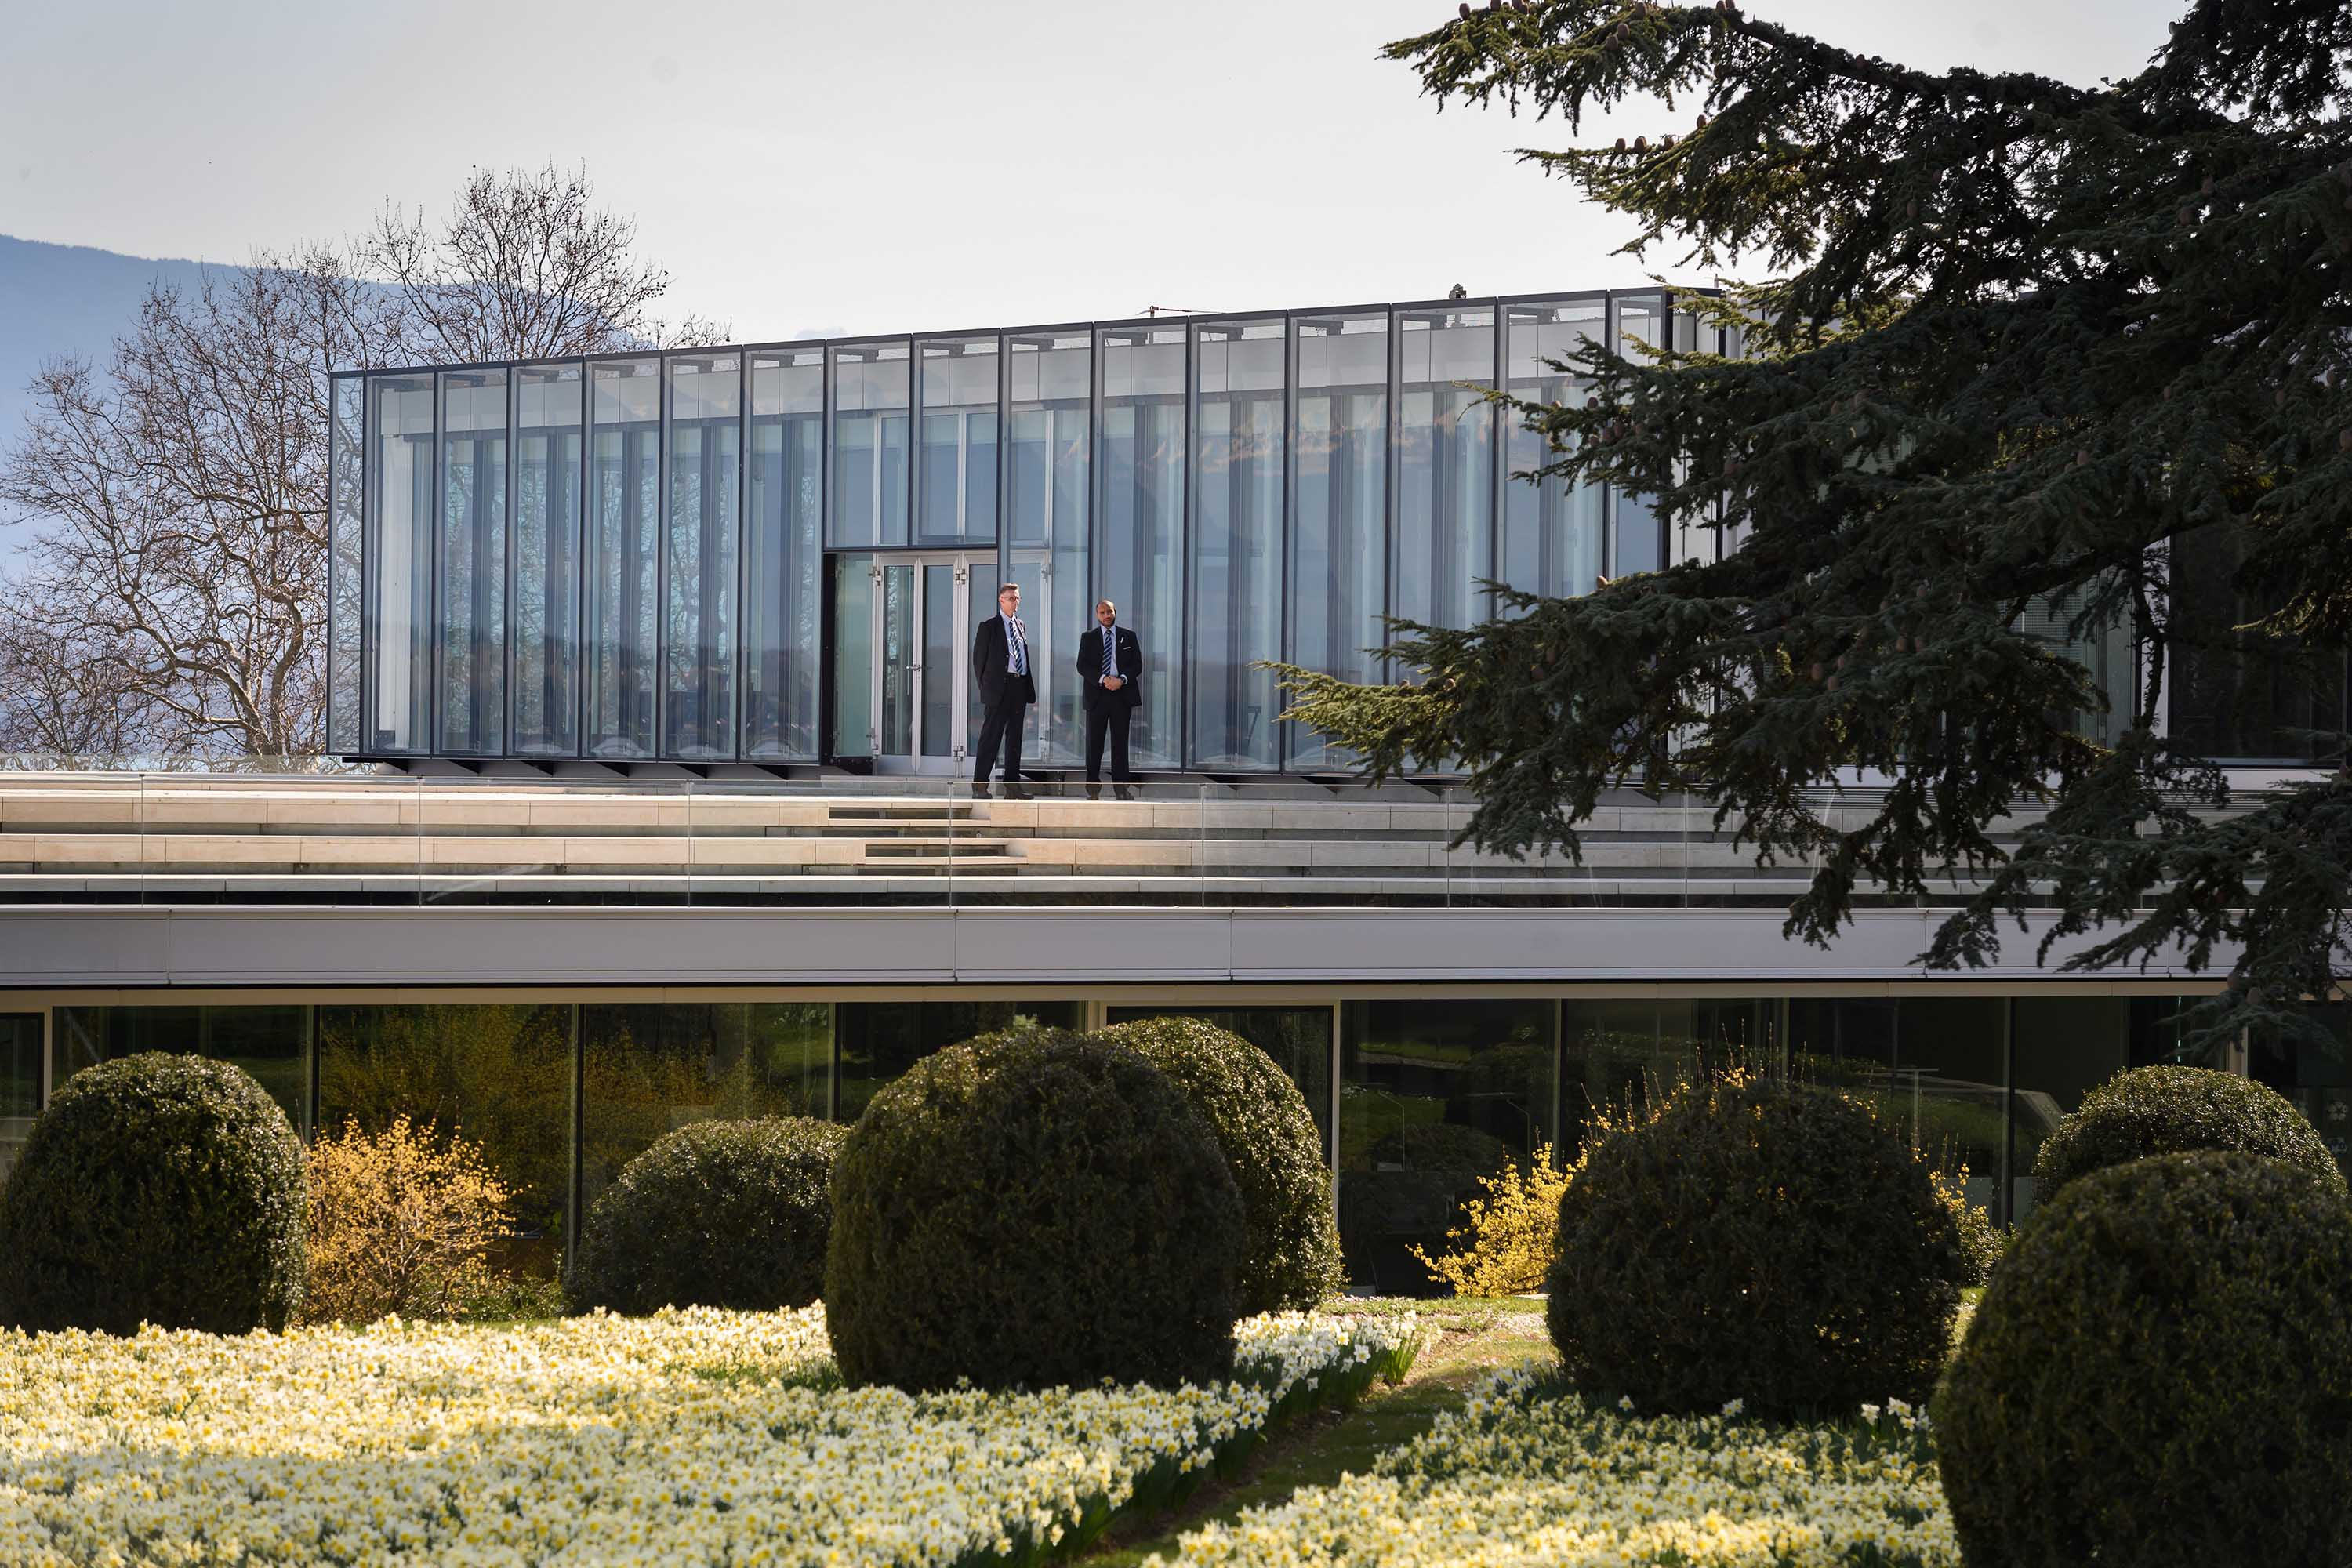 Security guards stands outside the UEFA headquarters in Nyon, Switzerland, during an emergency meeting on March 17.